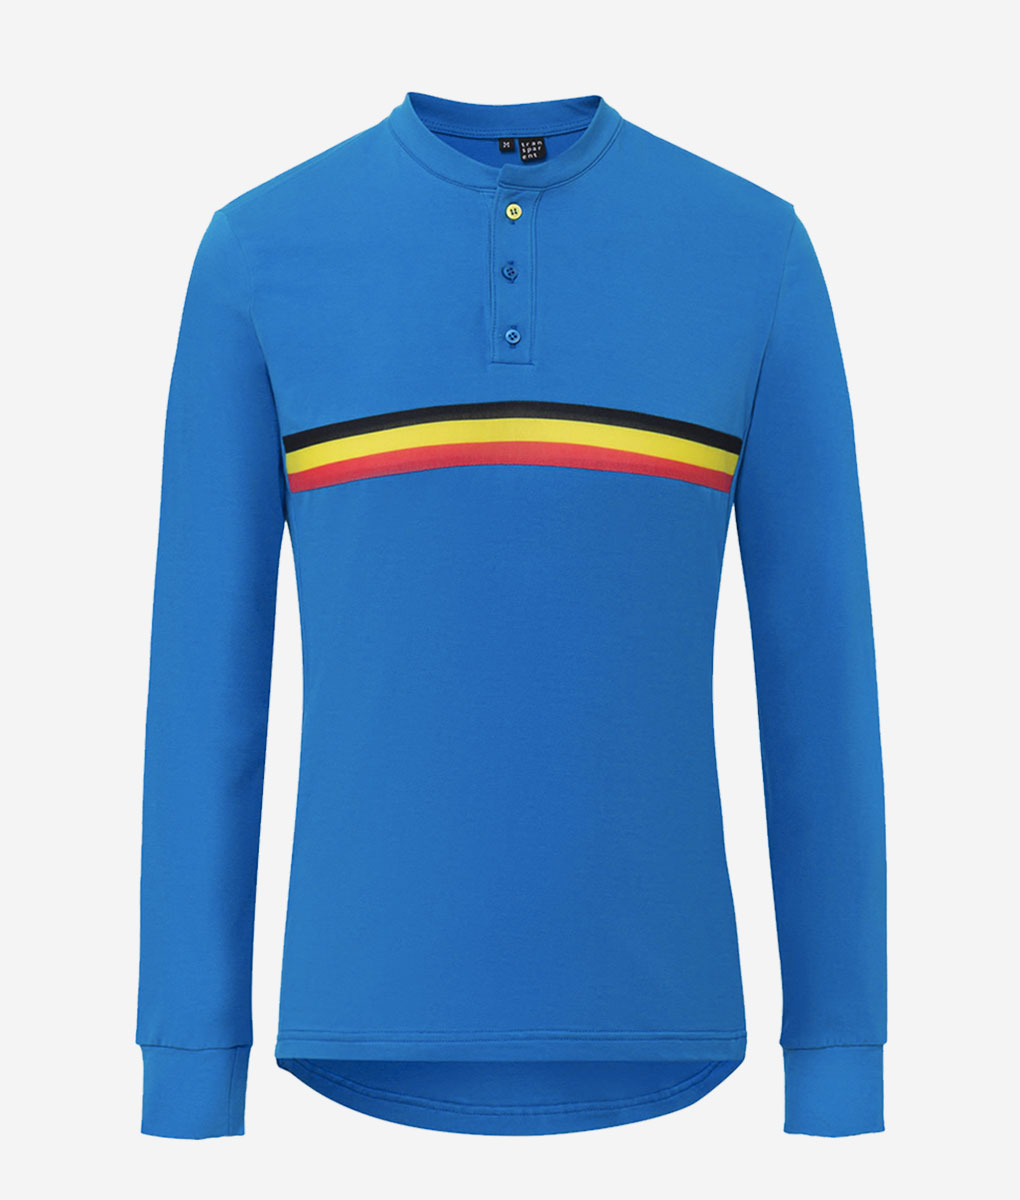 casual-cycling-belgium-front